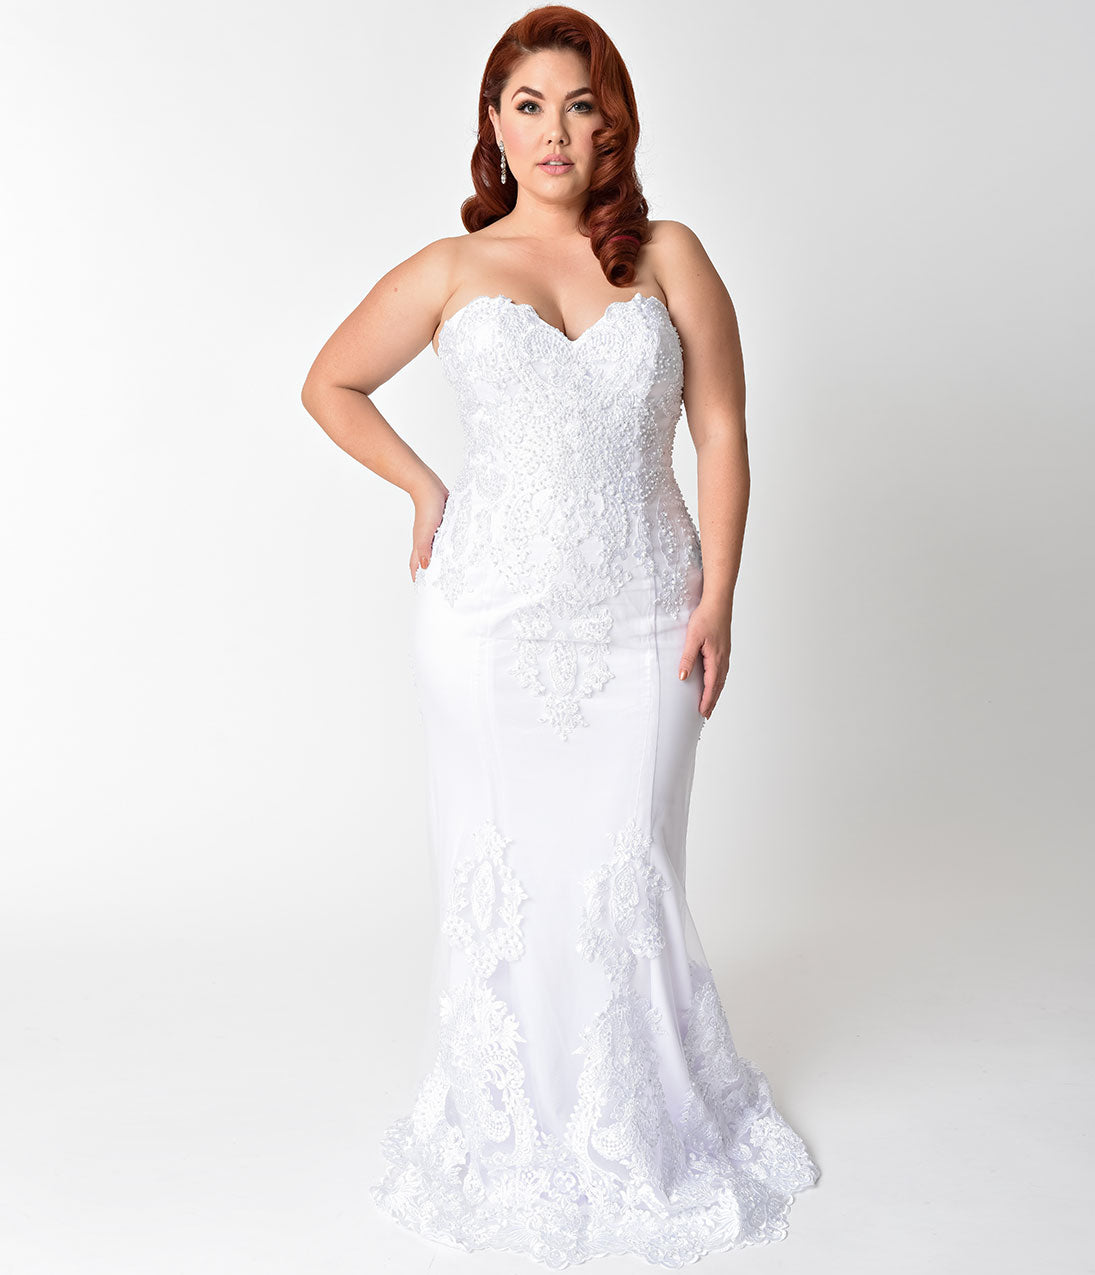 5882c09513a Plus Size White Embellished Strapless Mermaid Bridal Gown